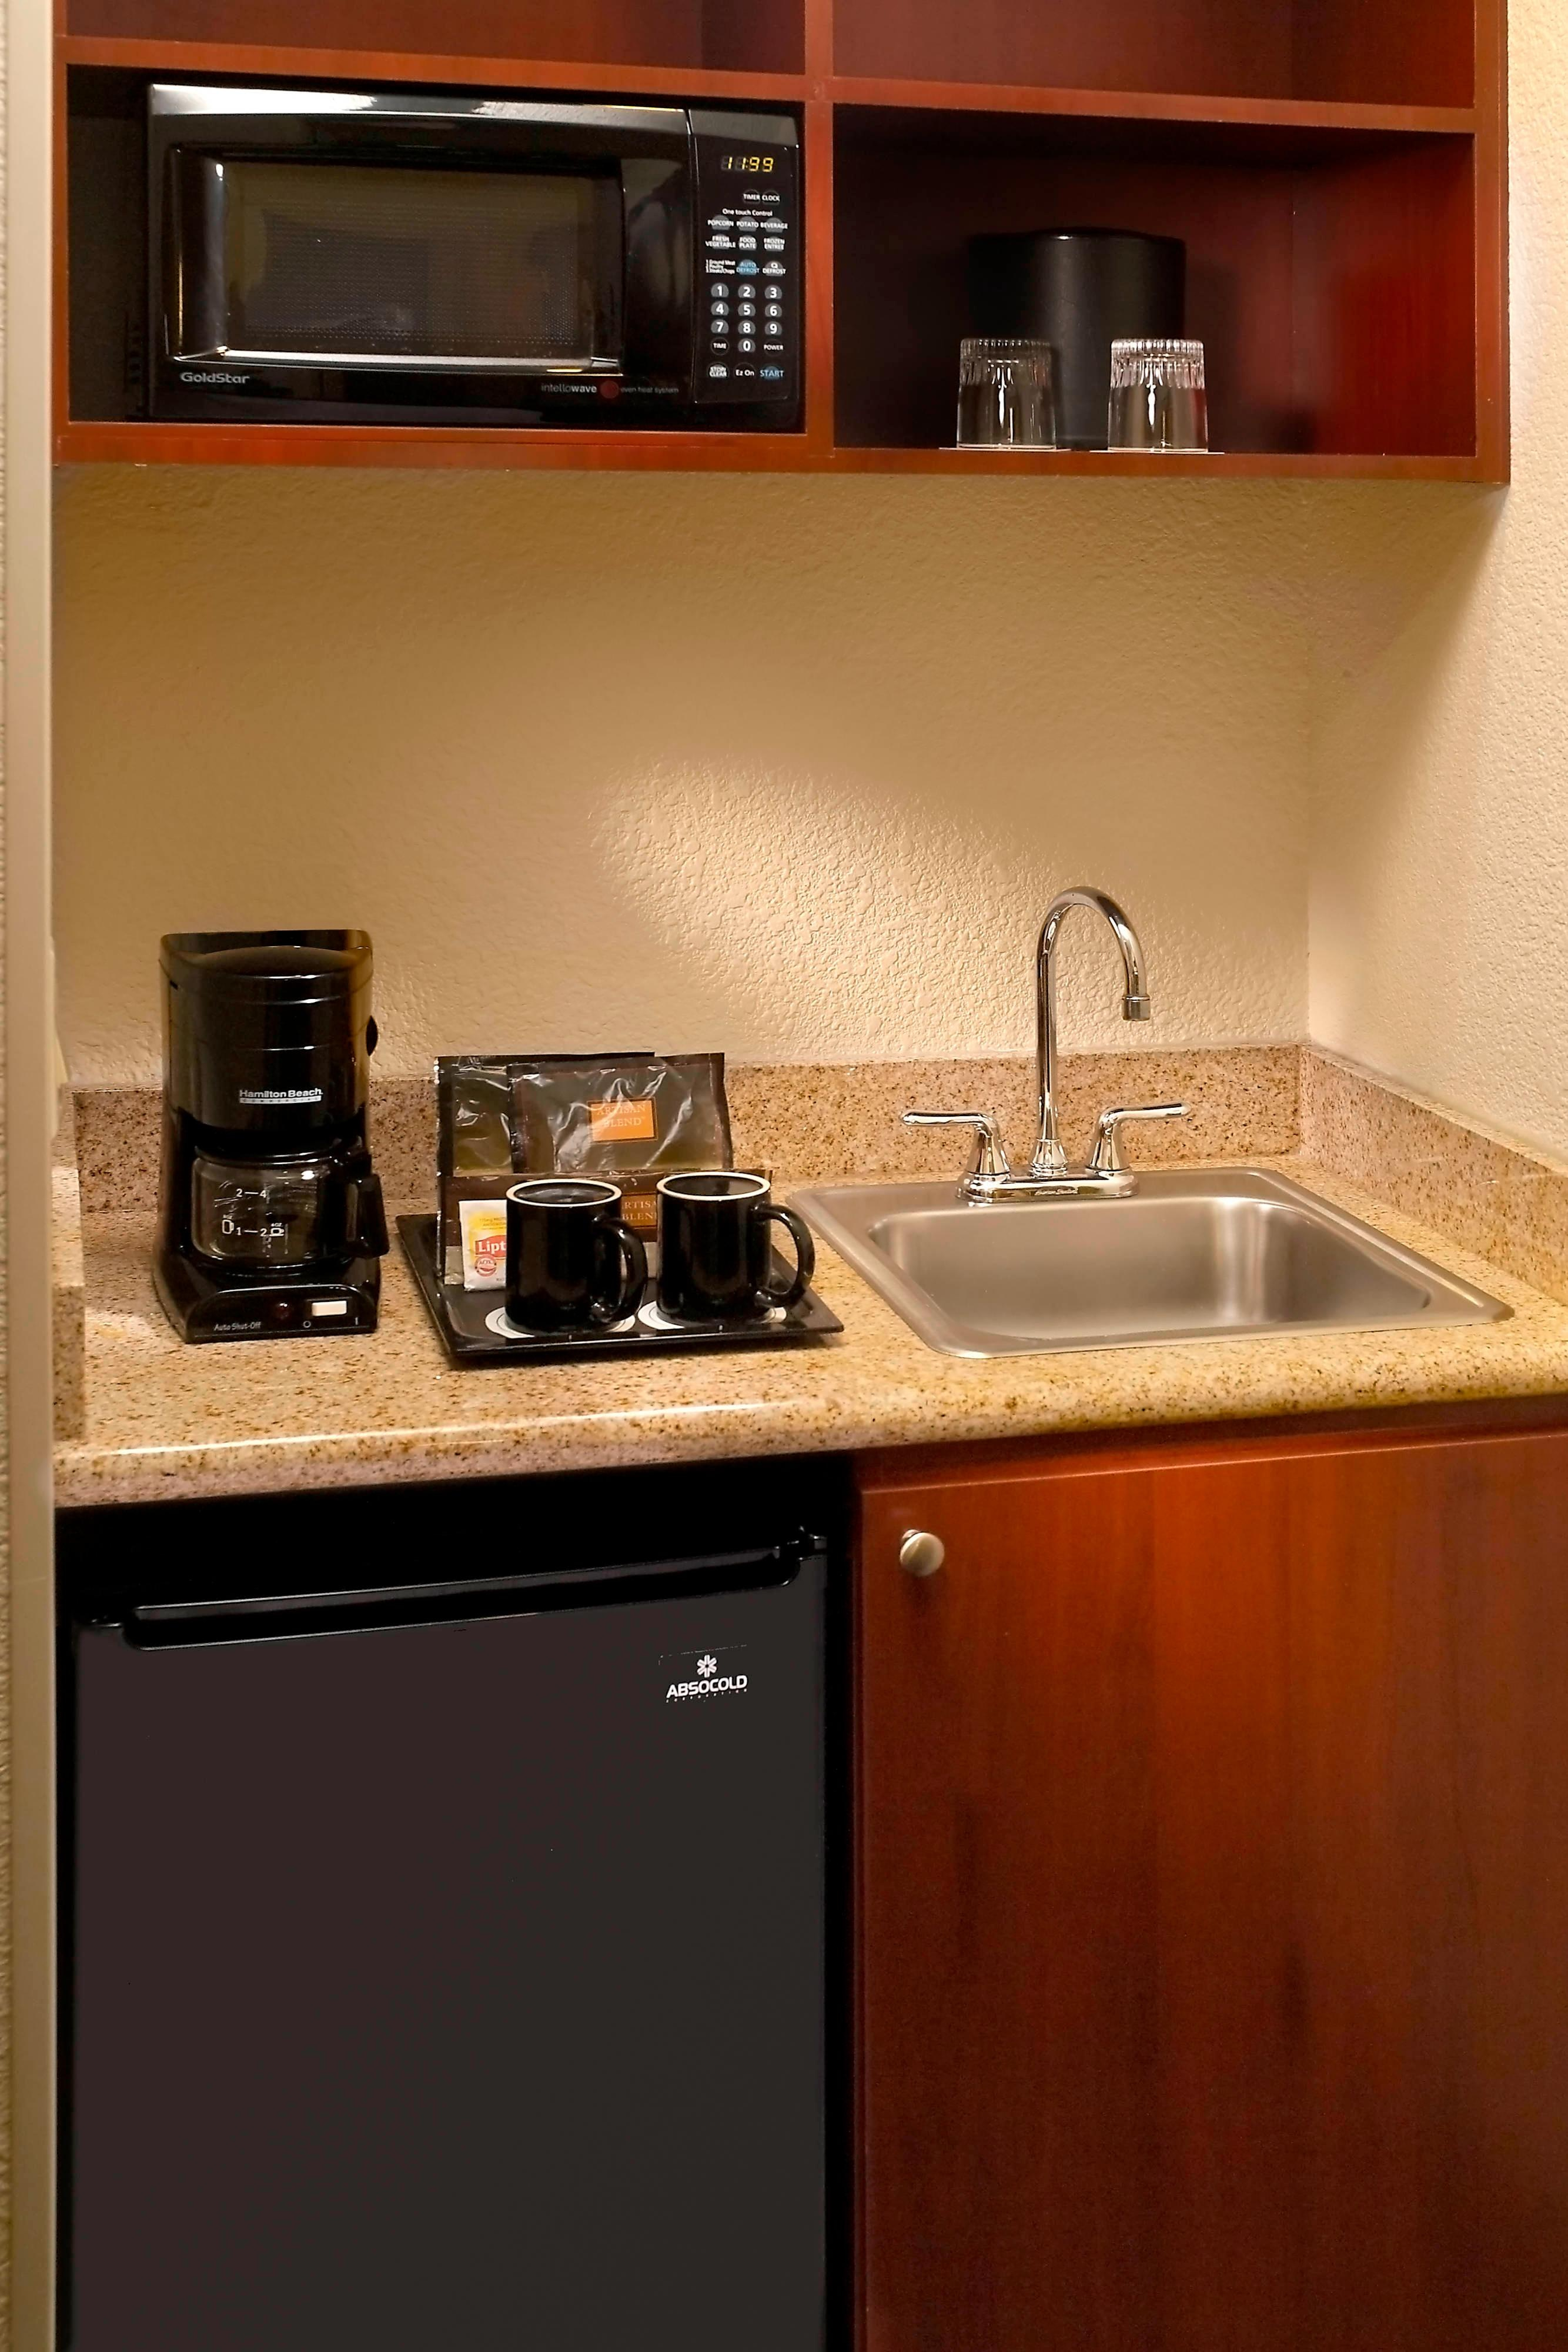 SpringHill Suites Kitchenette